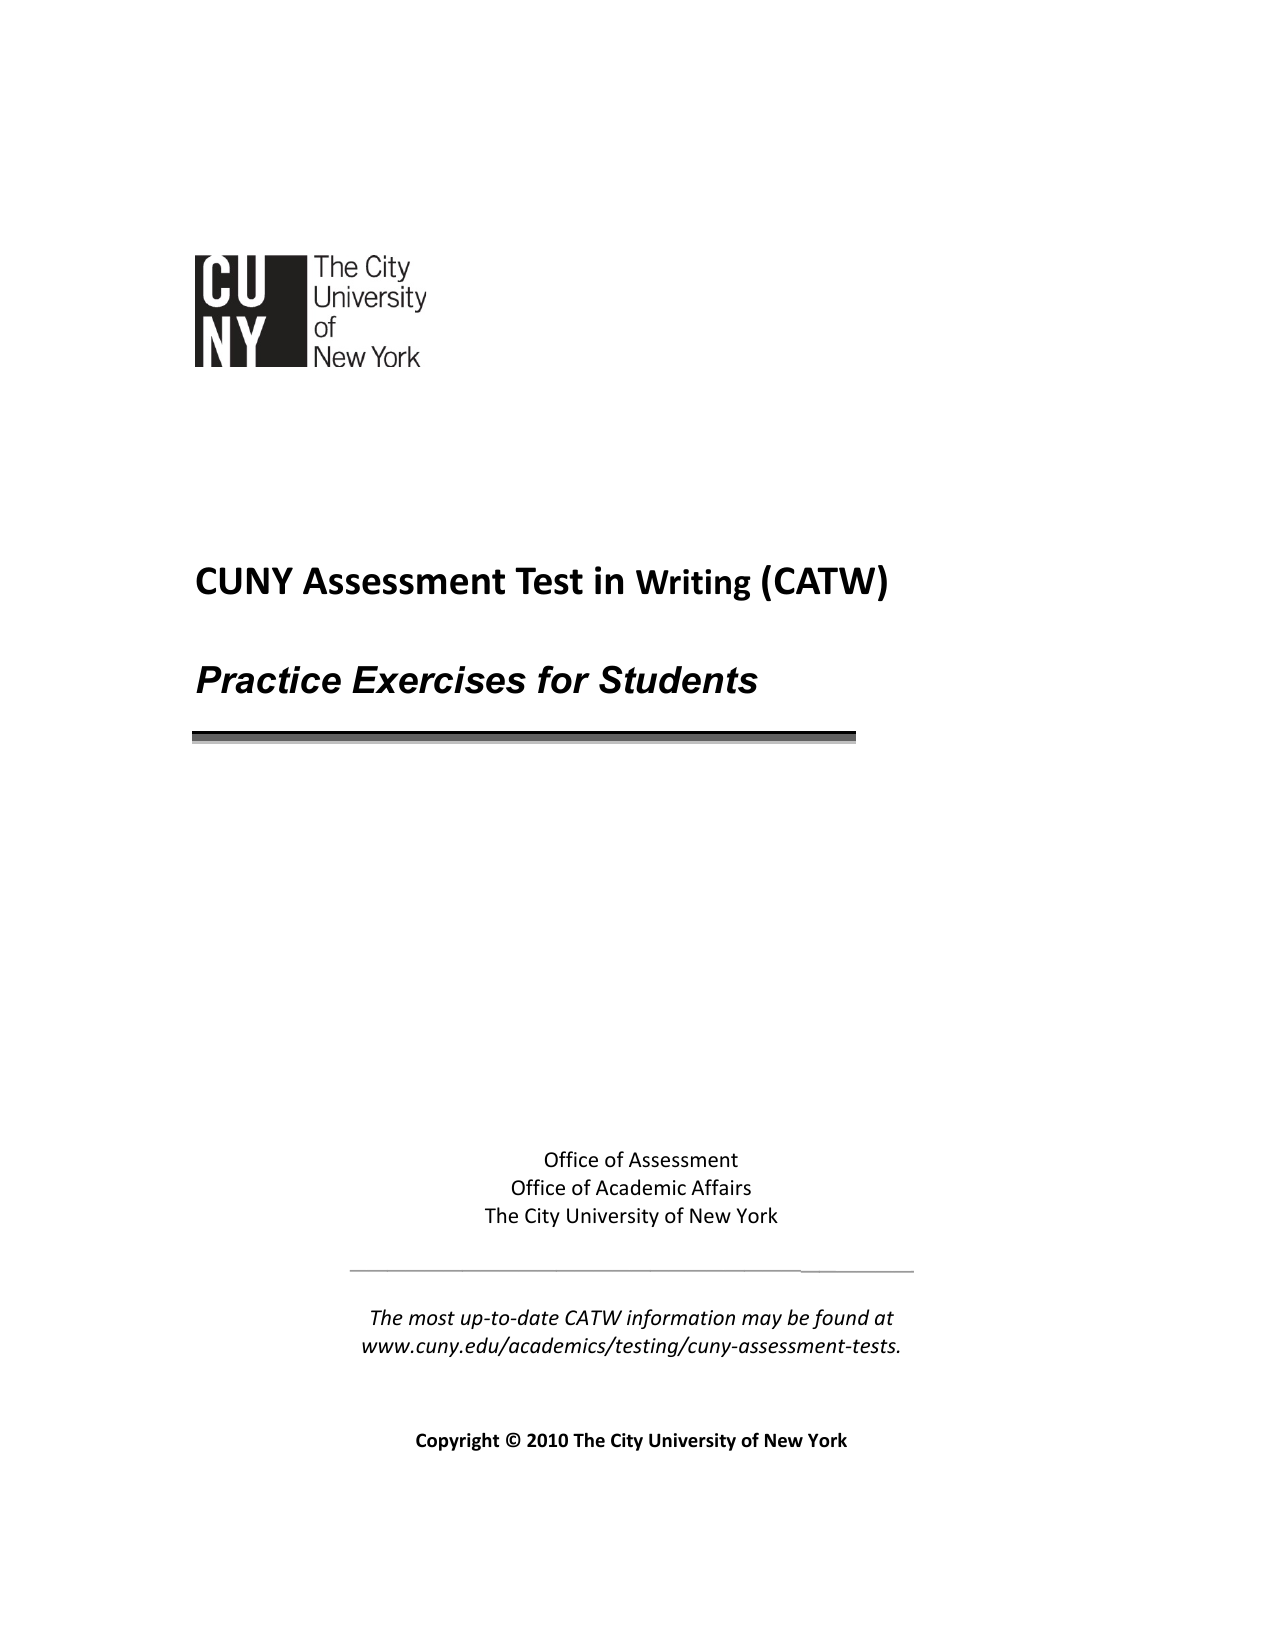 format of the cuny assessment test in writing catw